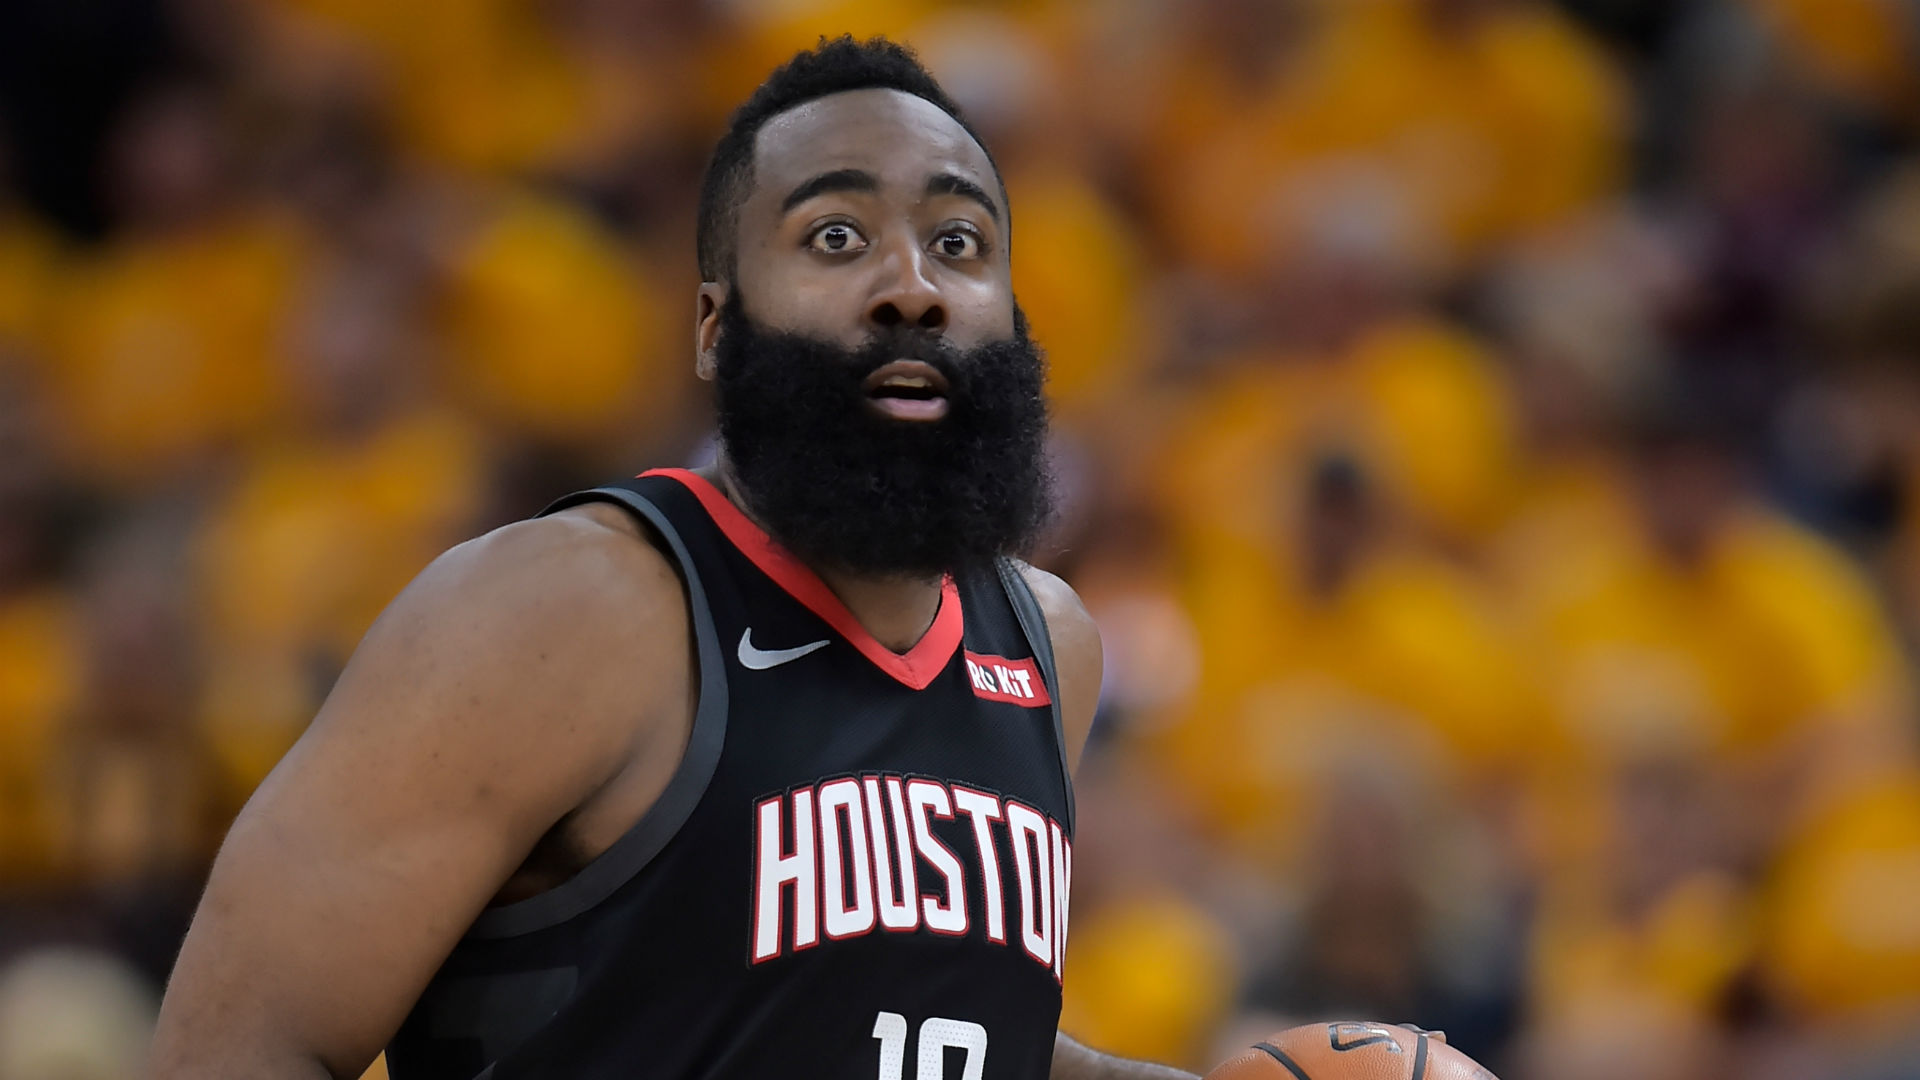 NBA confirms Warriors didn't foul James Harden | Sporting News